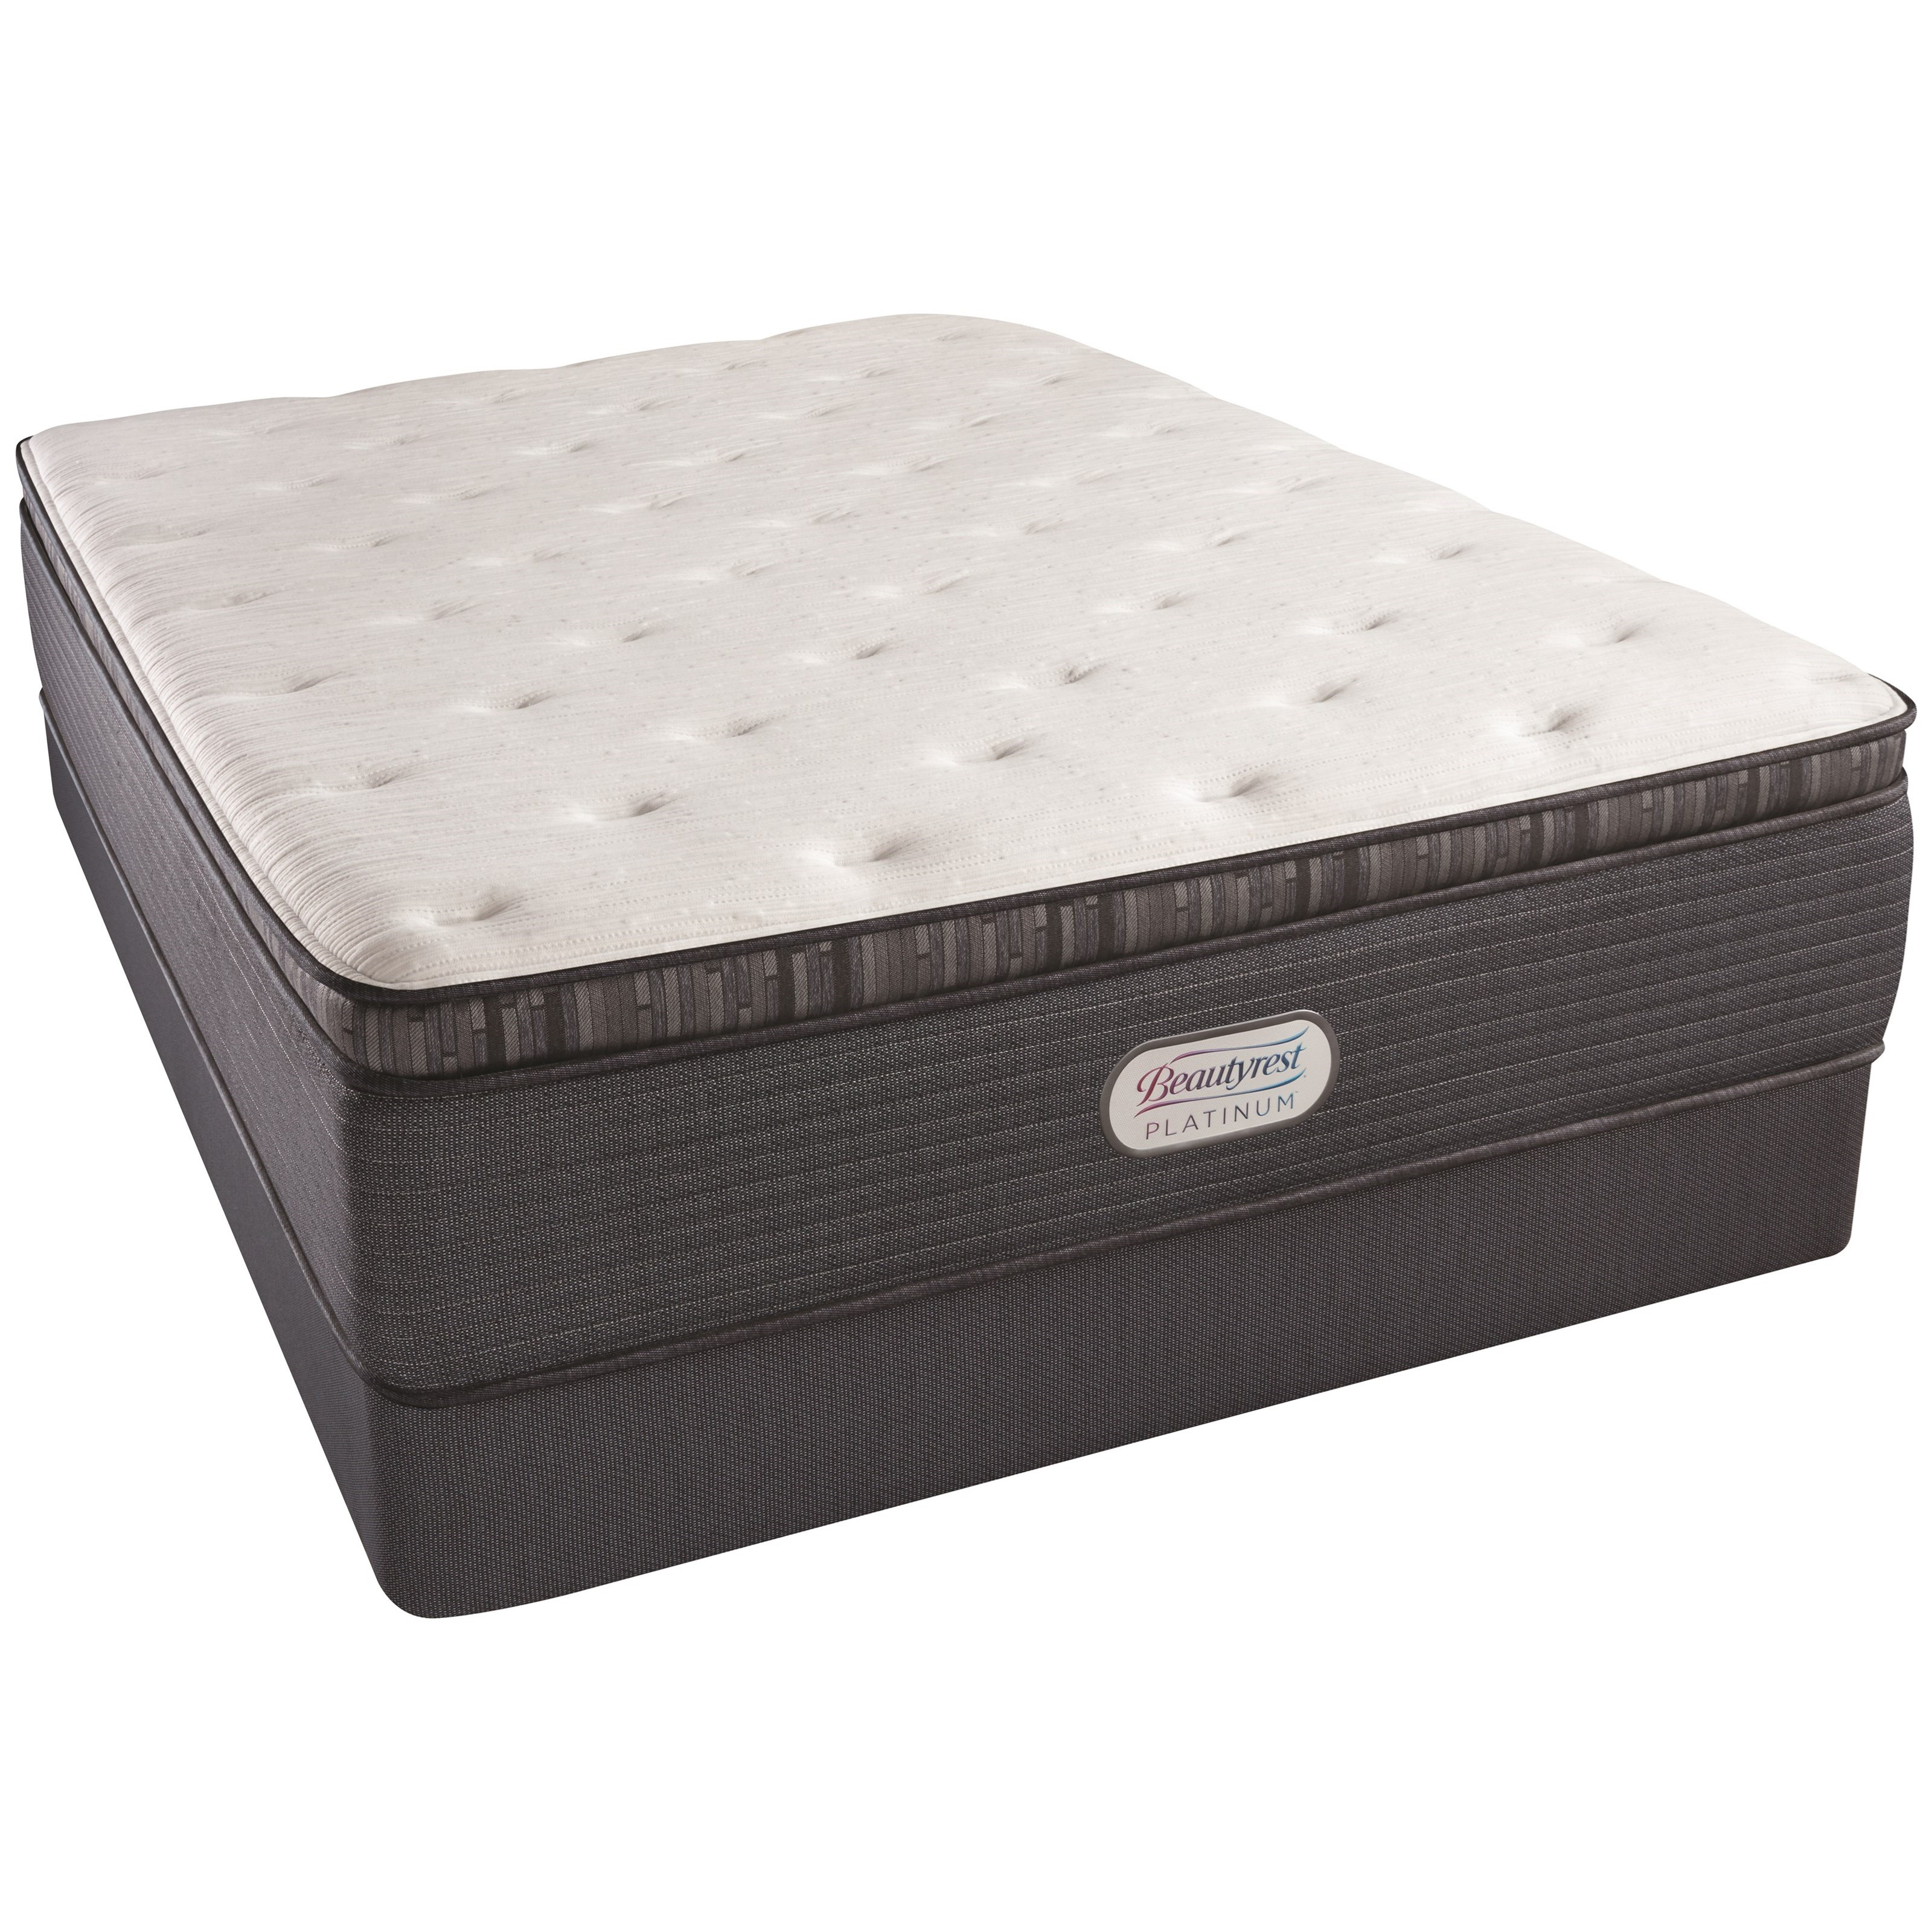 "Queen 15"" Luxury Firm PT Mattress Set"